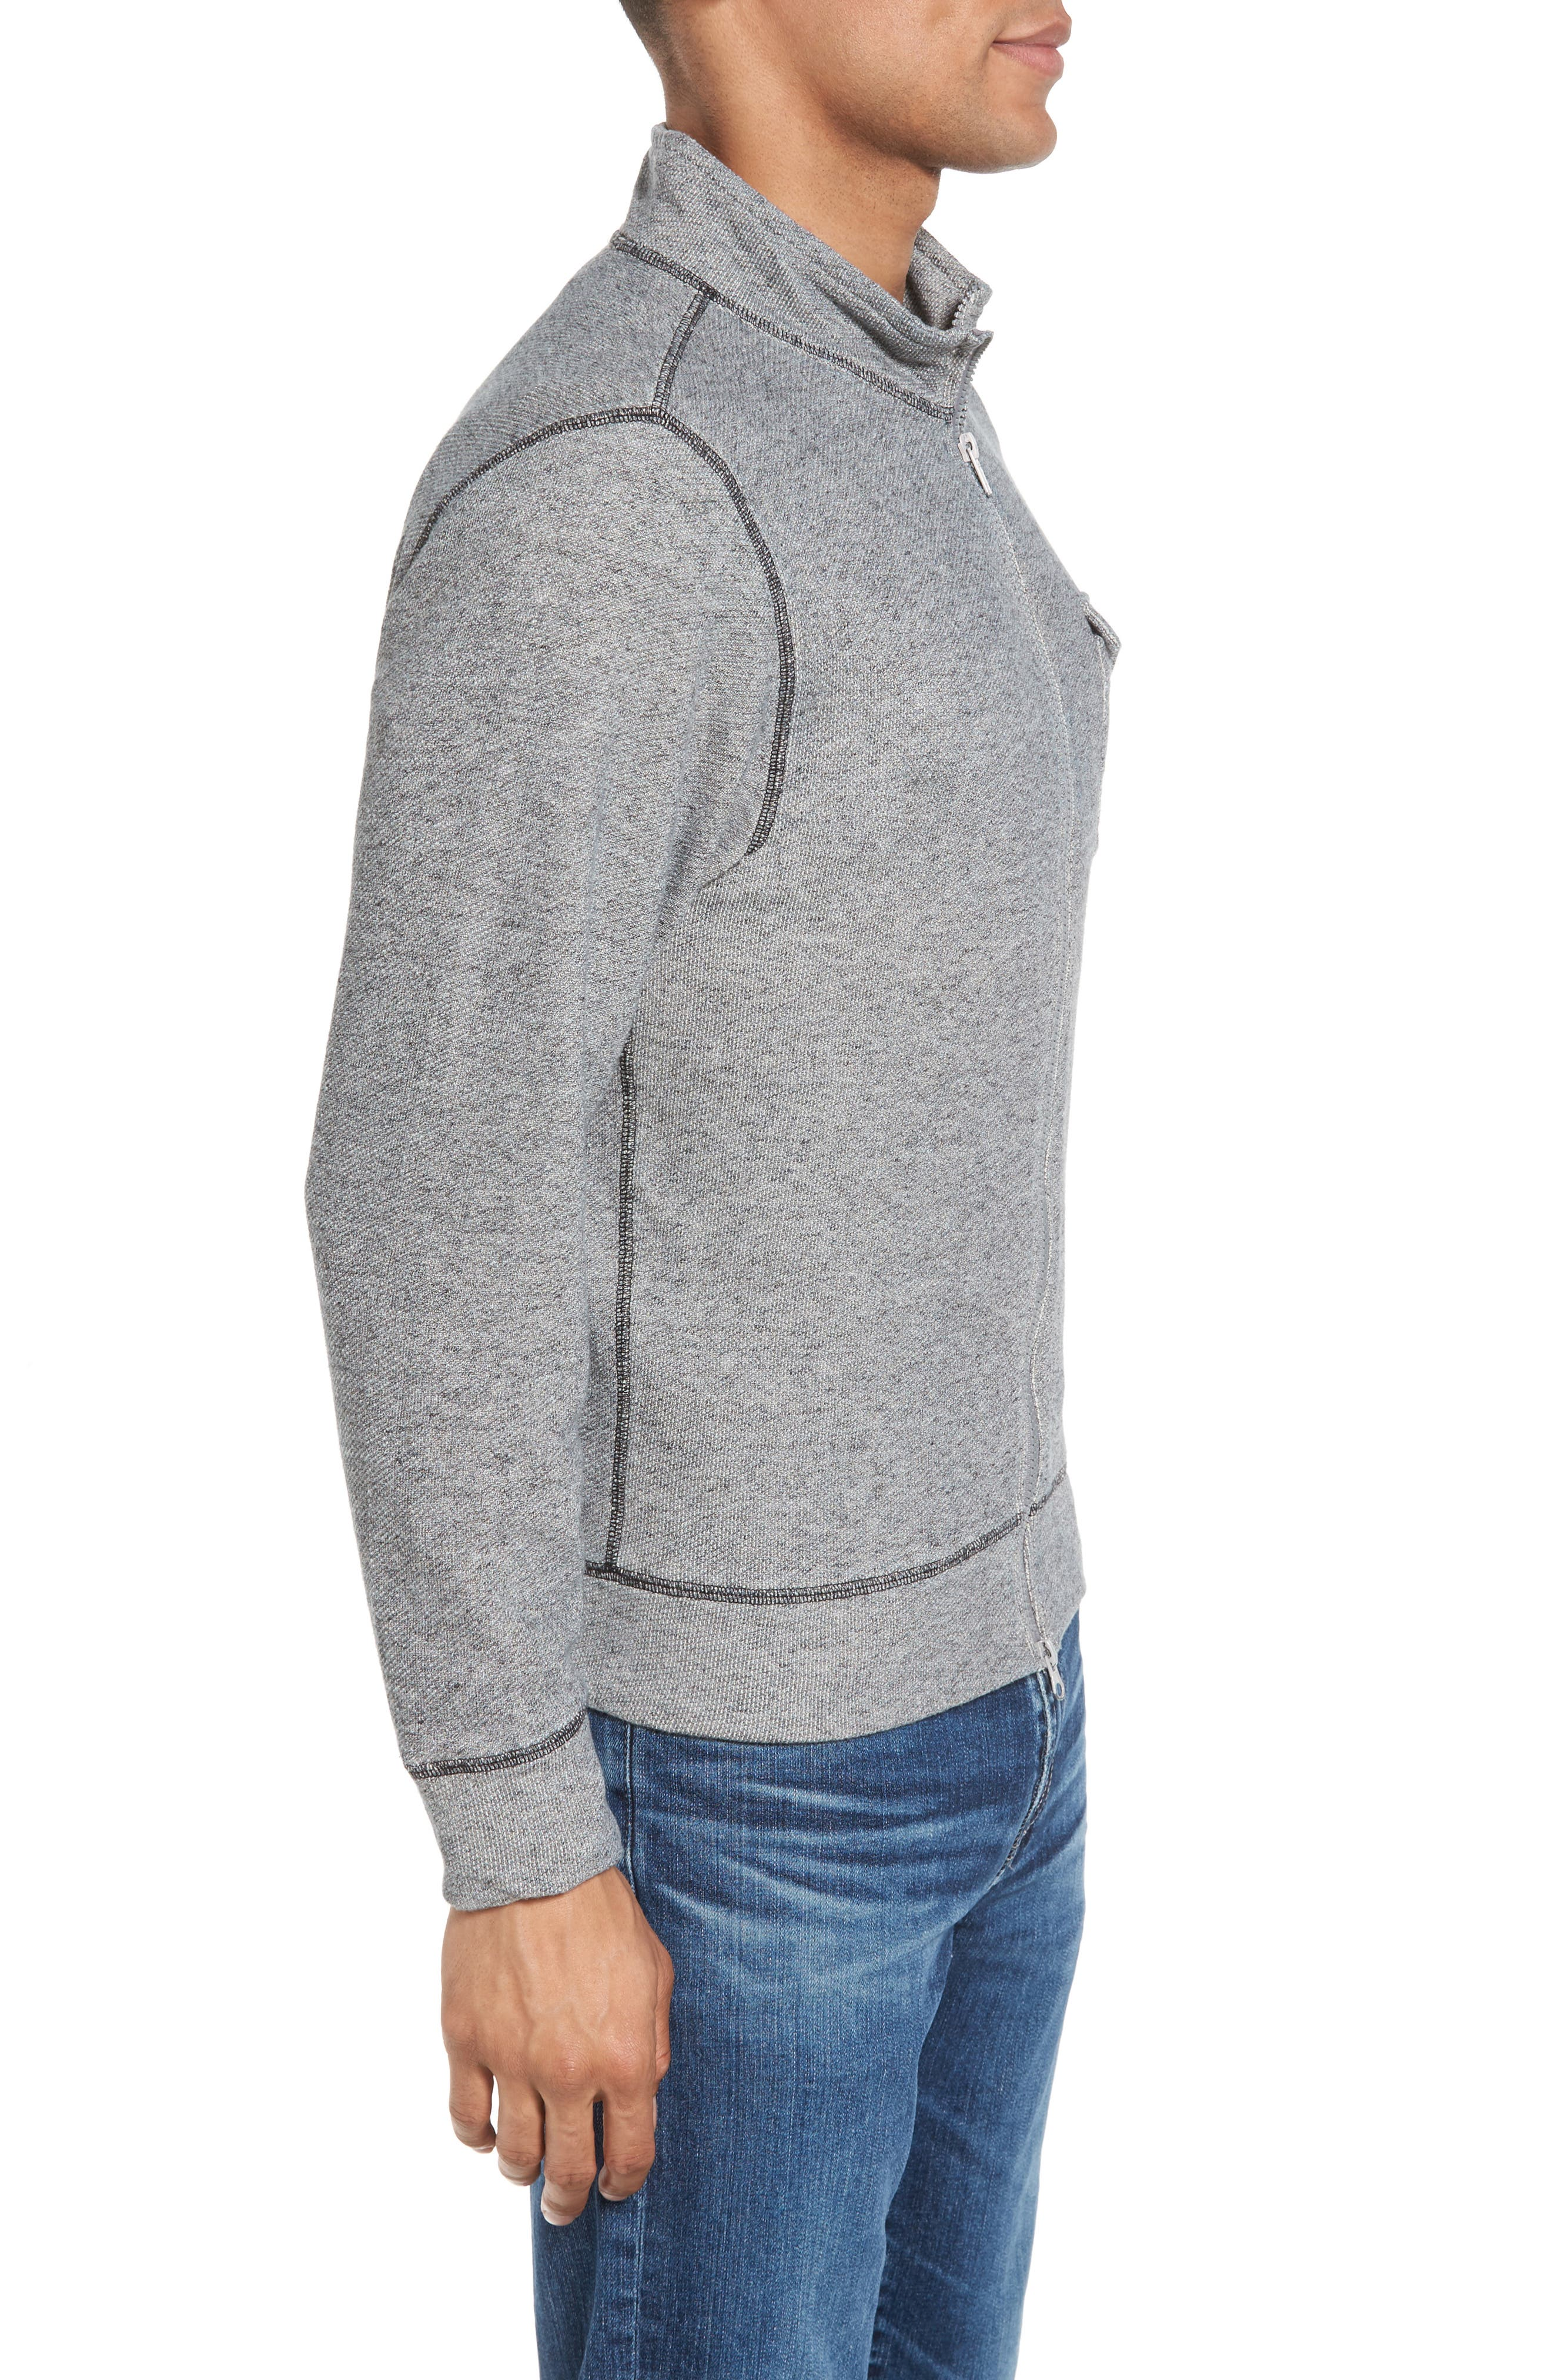 French Terry Zip Cardigan,                             Alternate thumbnail 3, color,                             020